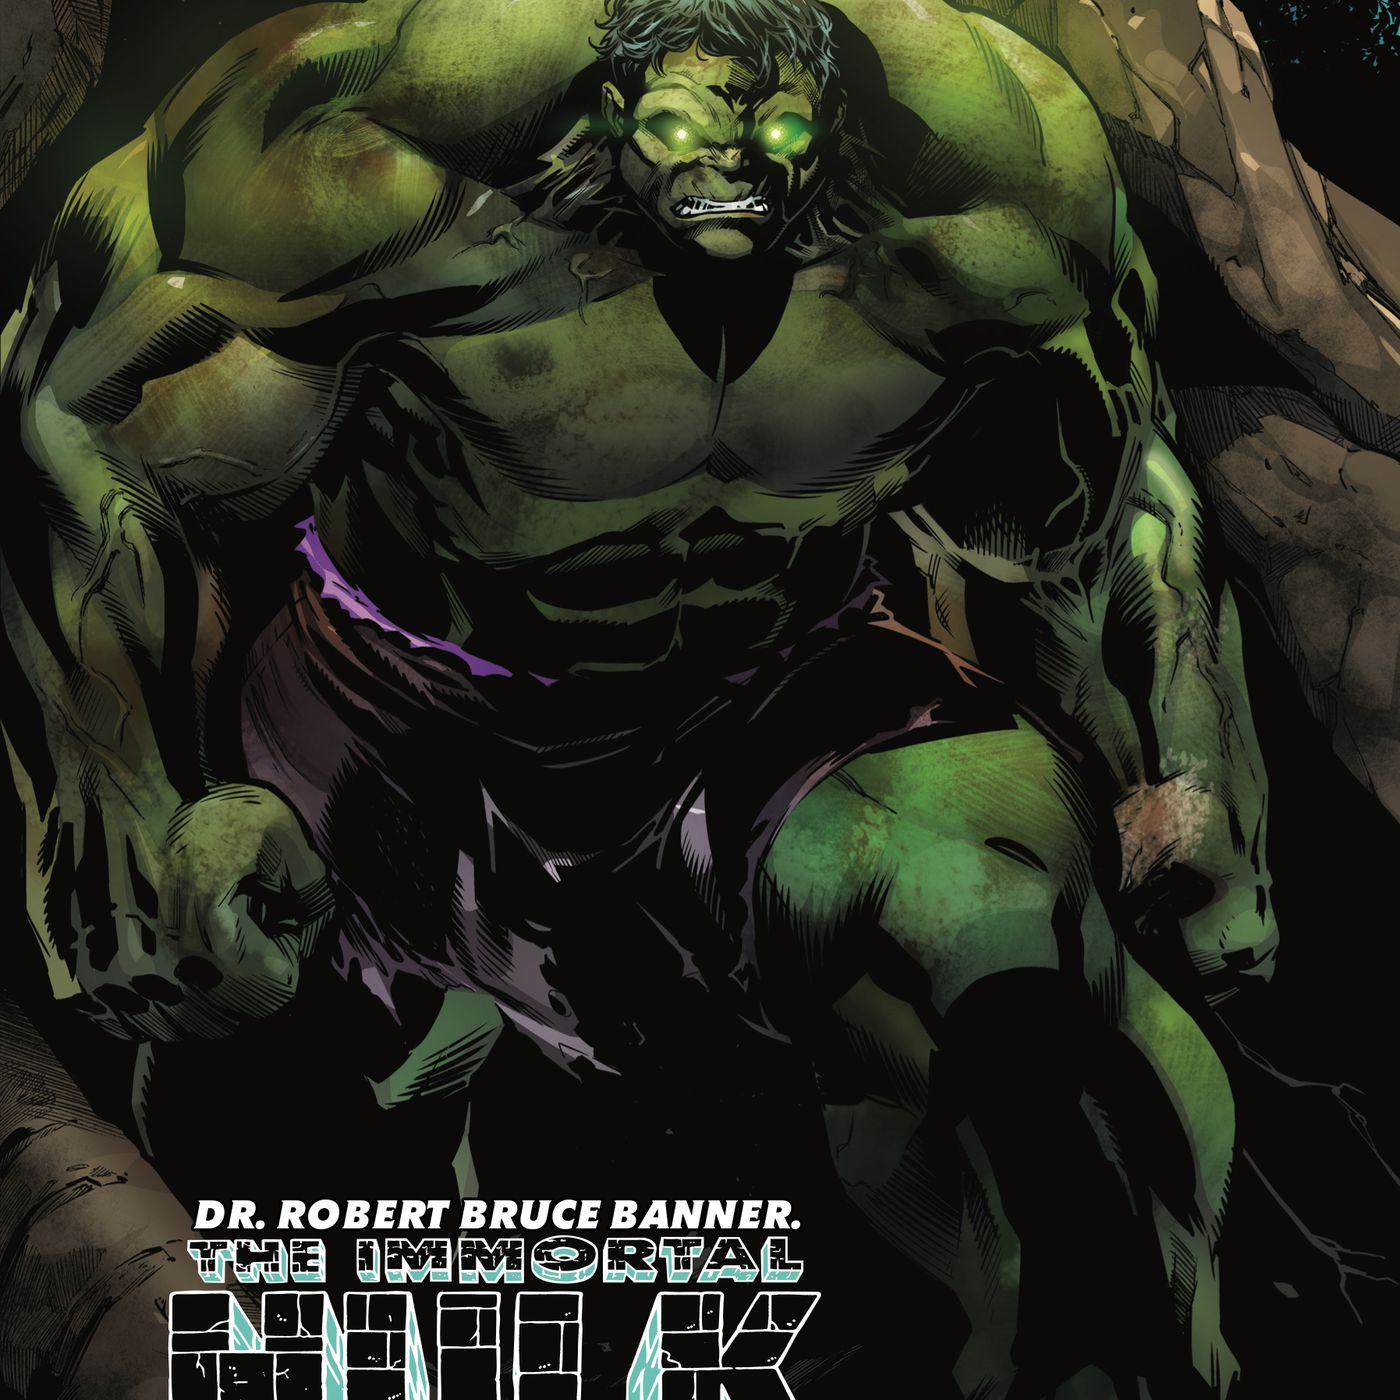 98  hulk wikipedia  marvel hulk statue by sideshow collectibles sideshow  hulk escapes military